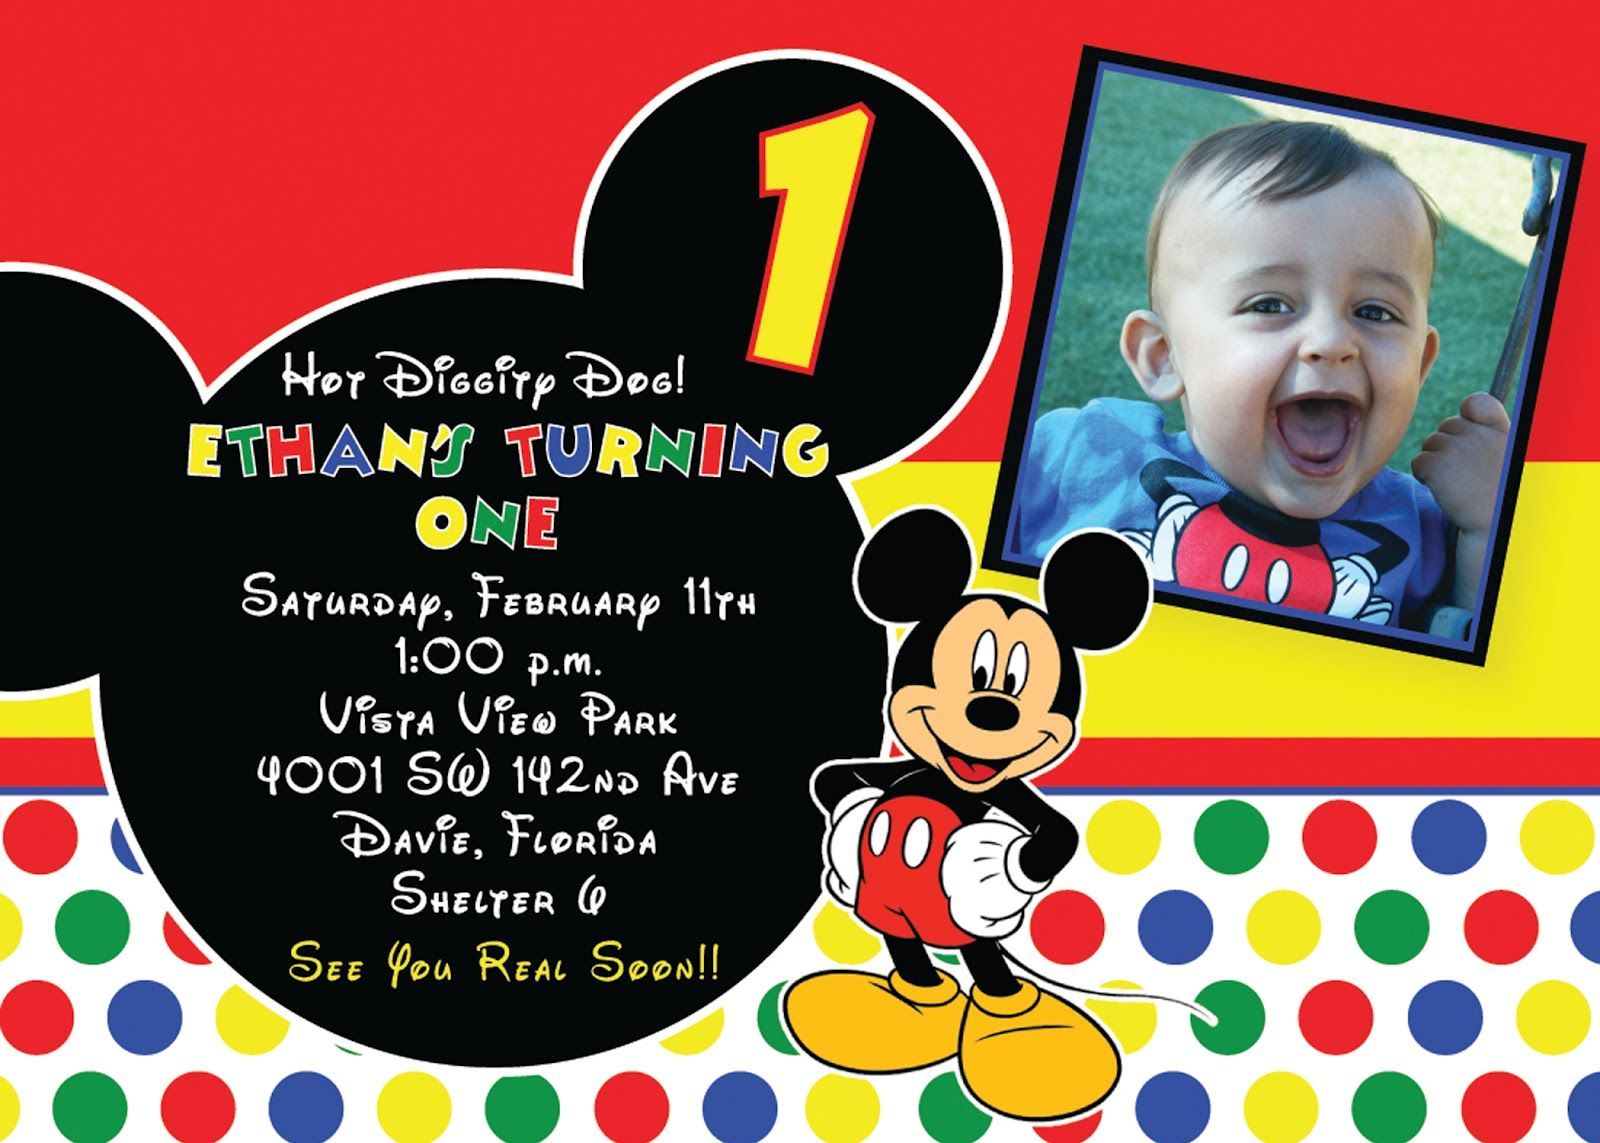 photograph about Free Printable Mickey Mouse 1st Birthday Invitations named Mickey Mouse 1st Birthday Invites Designs Free of charge Printable